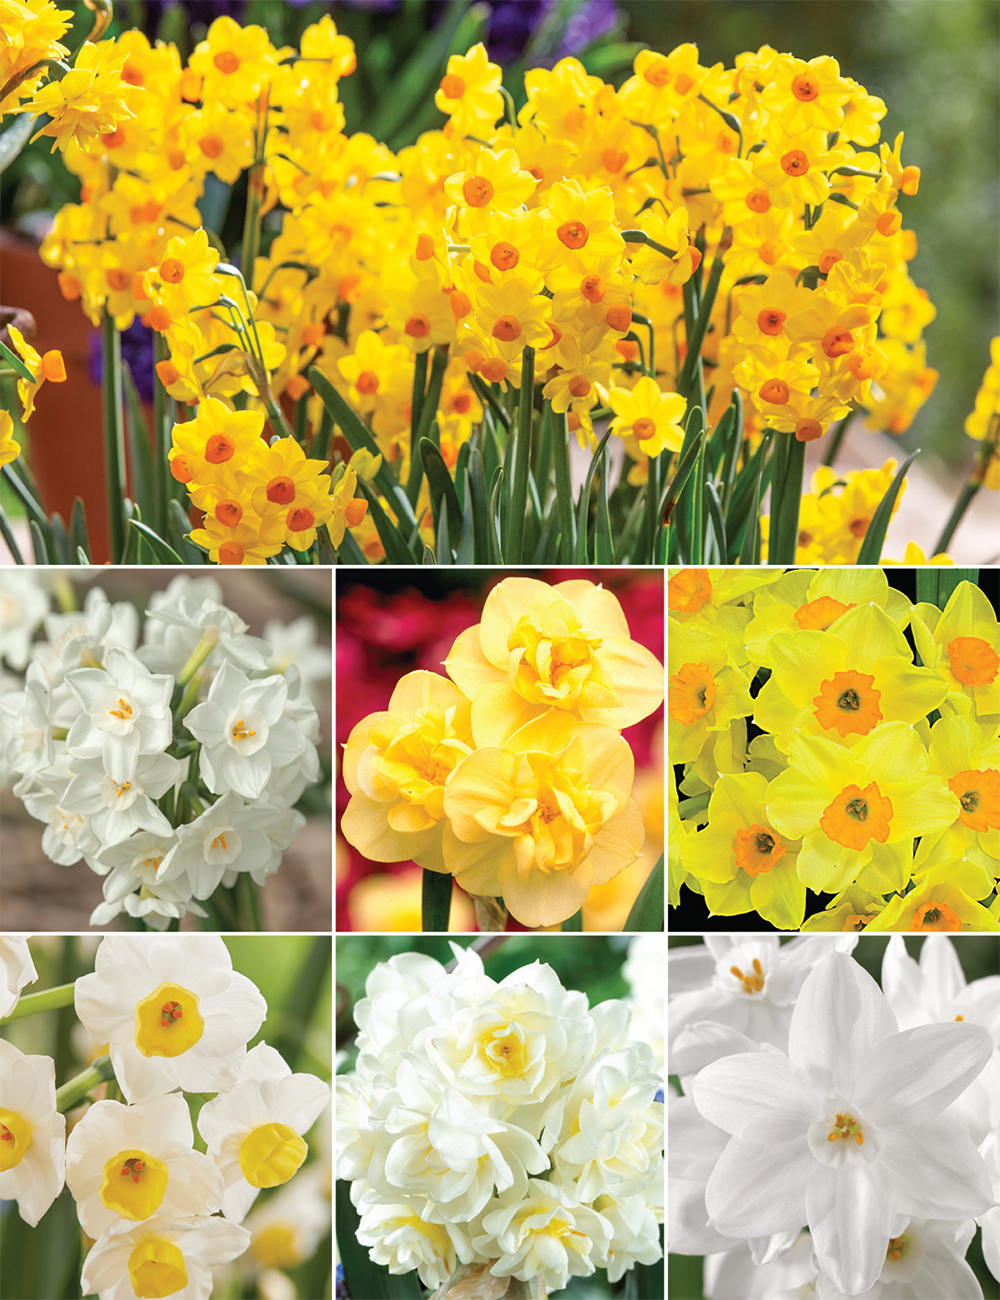 Scented Daffodils (reduced) Collection